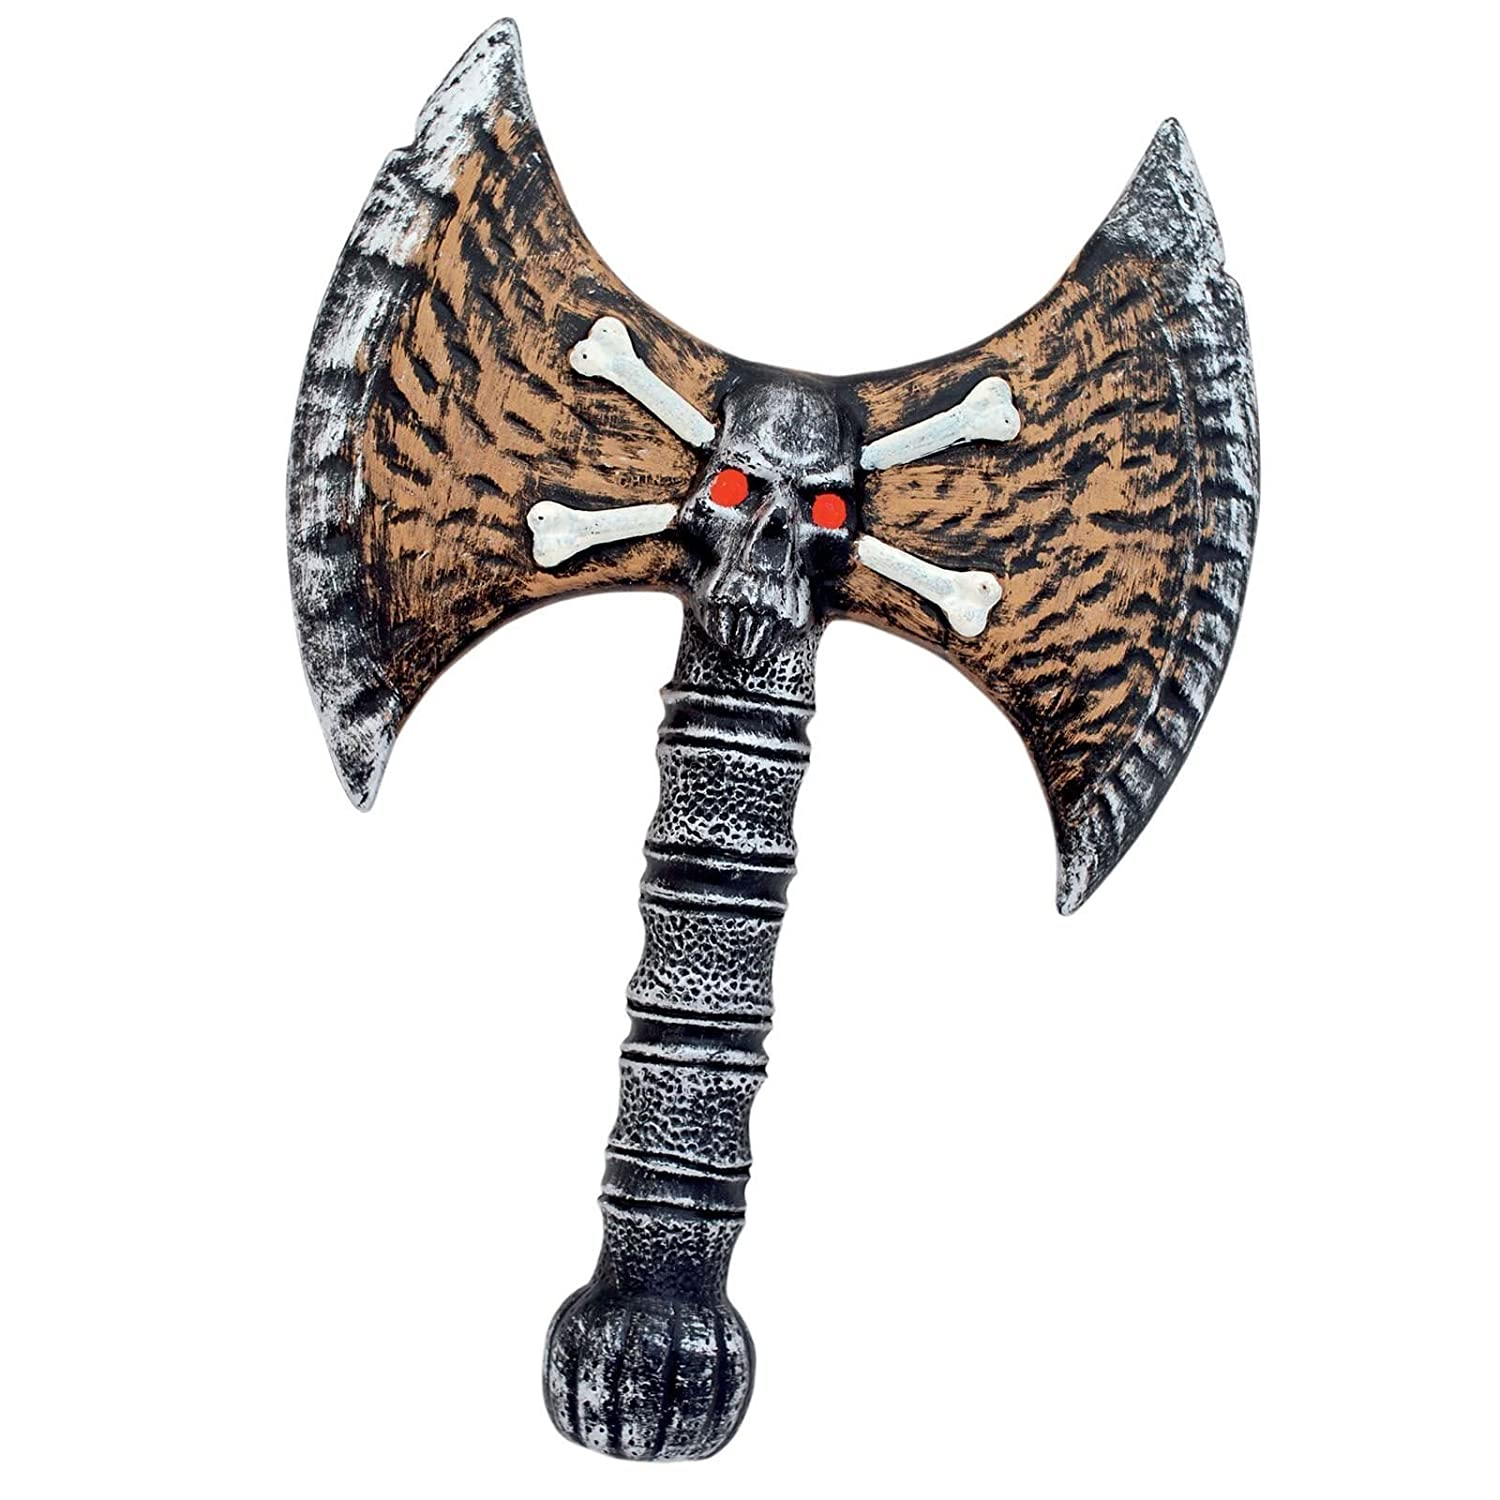 34cm Battle Axe Handheld Skull design Pirate Bones Goblin LARP War Lord Viking Weapon Plastic Cosplay Game Prop Accessory Fancy Dress VIP